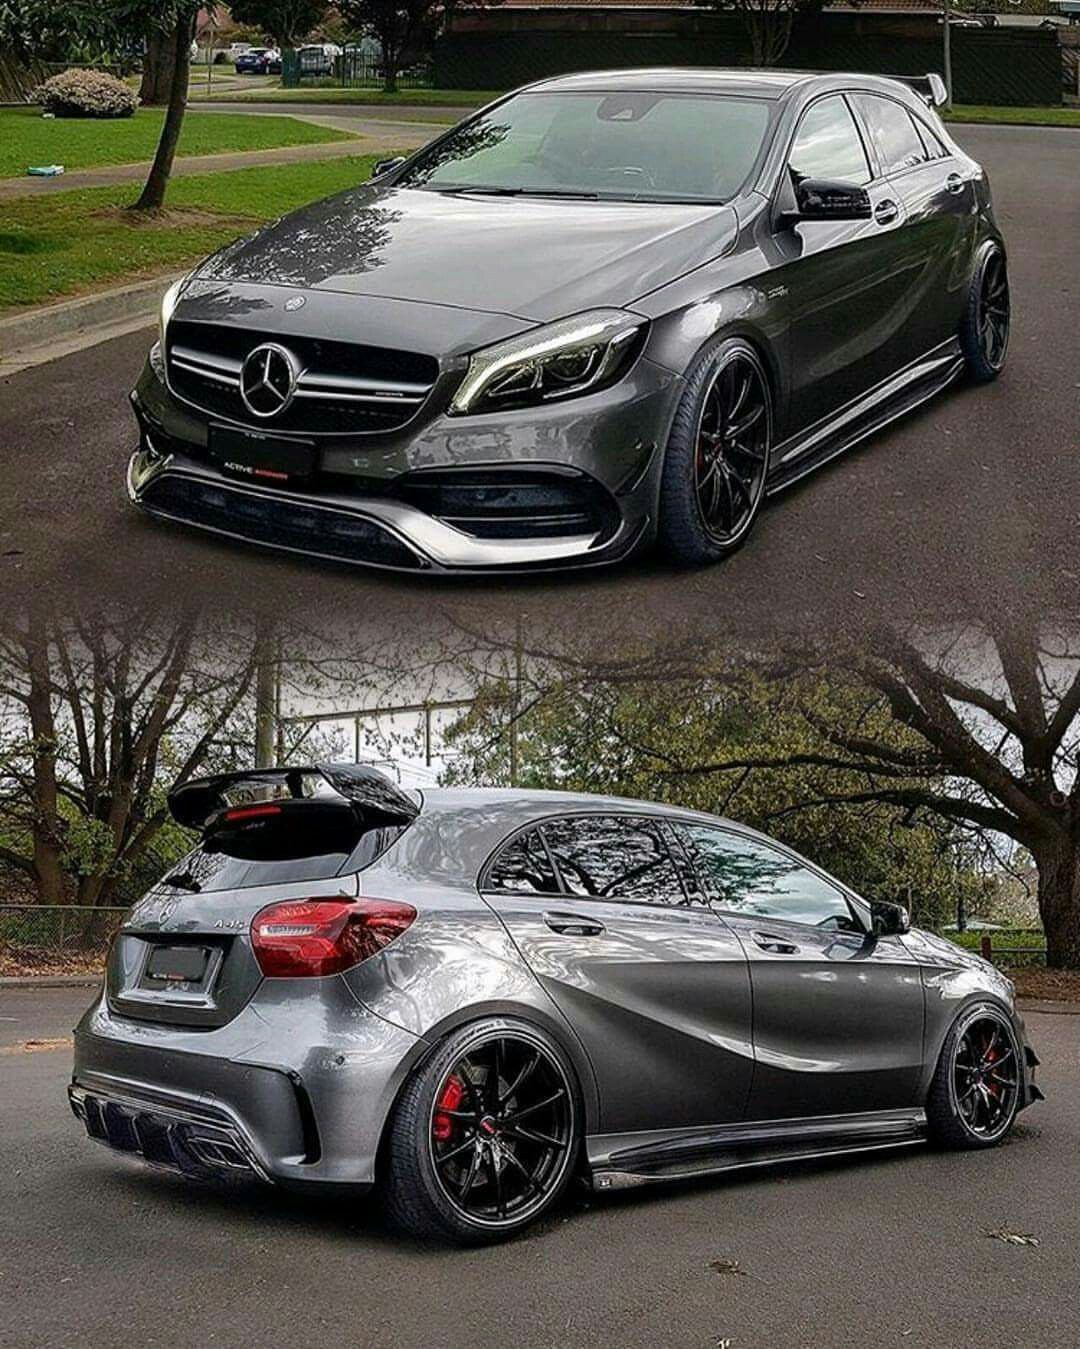 2017 Mercedes Amg A45 Face Lift 381 Hp 2 0l 4matic 4 Cylinder 0 100 Km Sec